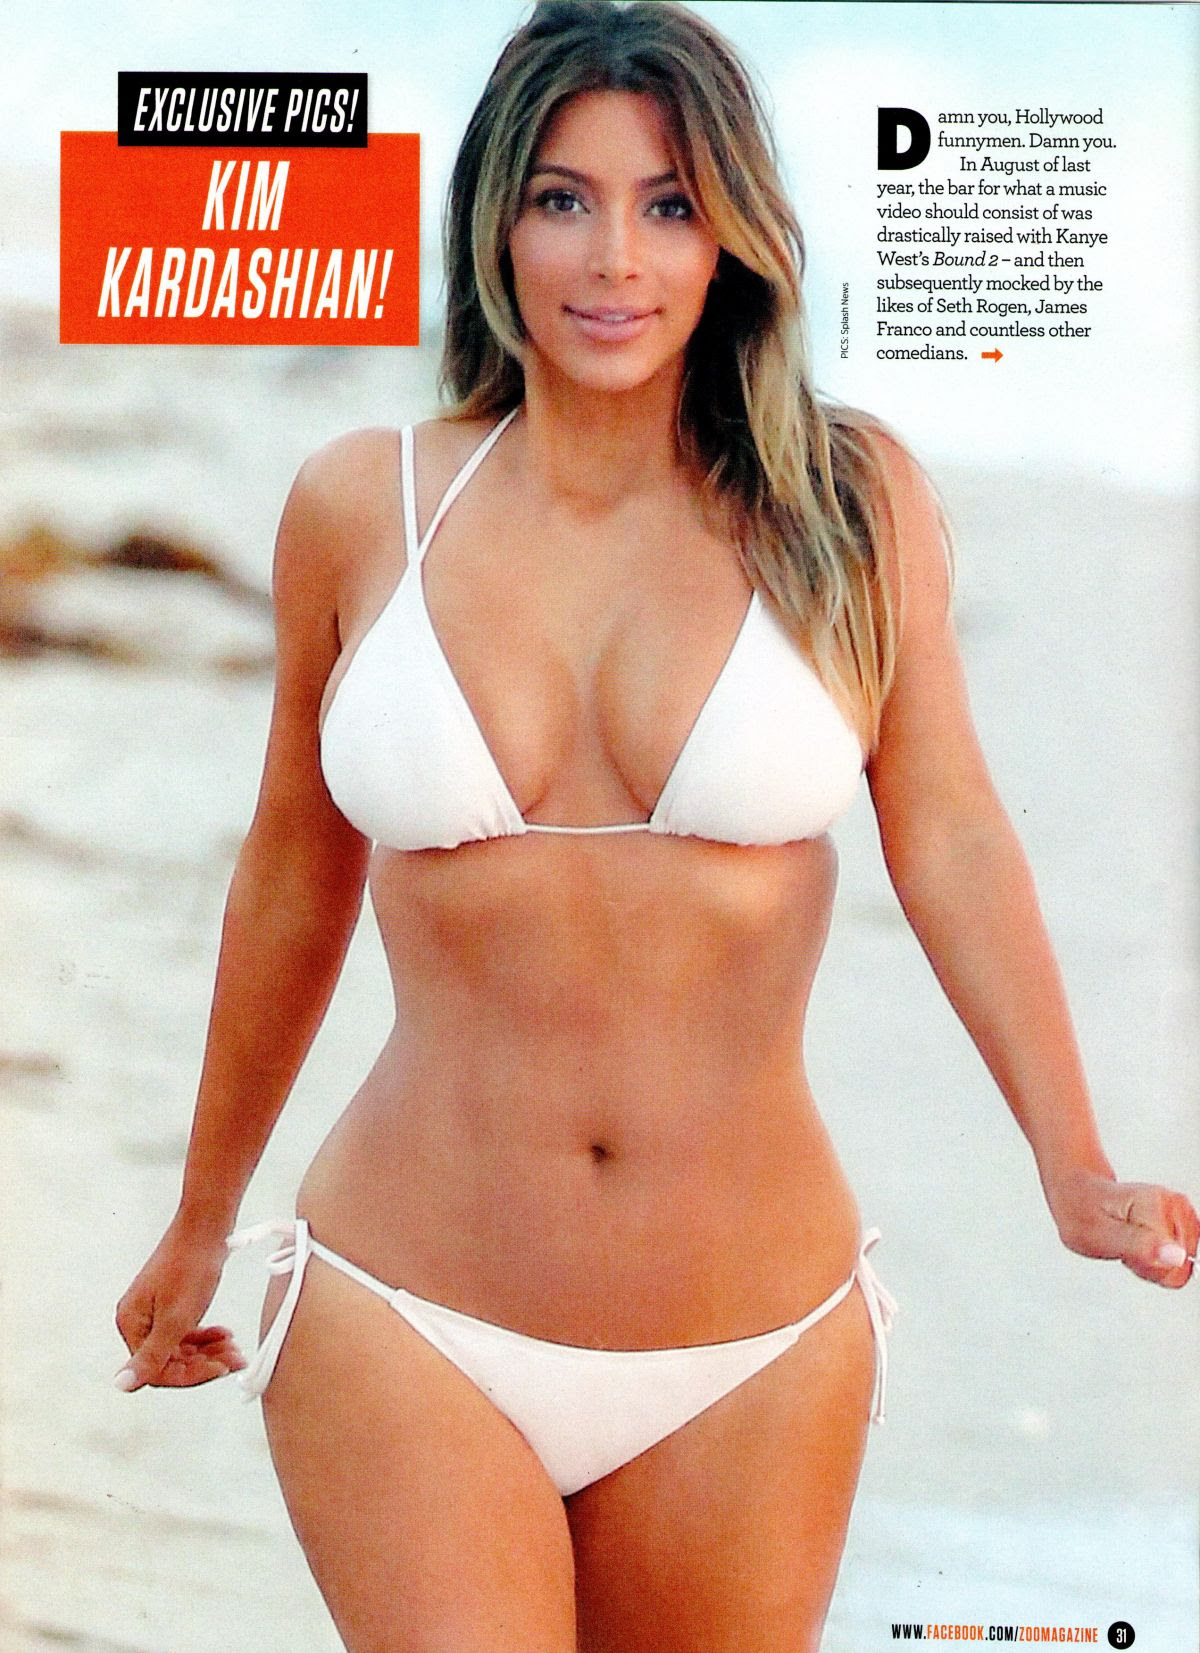 http://www.hawtcelebs.com/wp-content/uploads/2014/04/kim-kardasian-in-zoo-magazine-11th-april-2014-issue_1.jpg